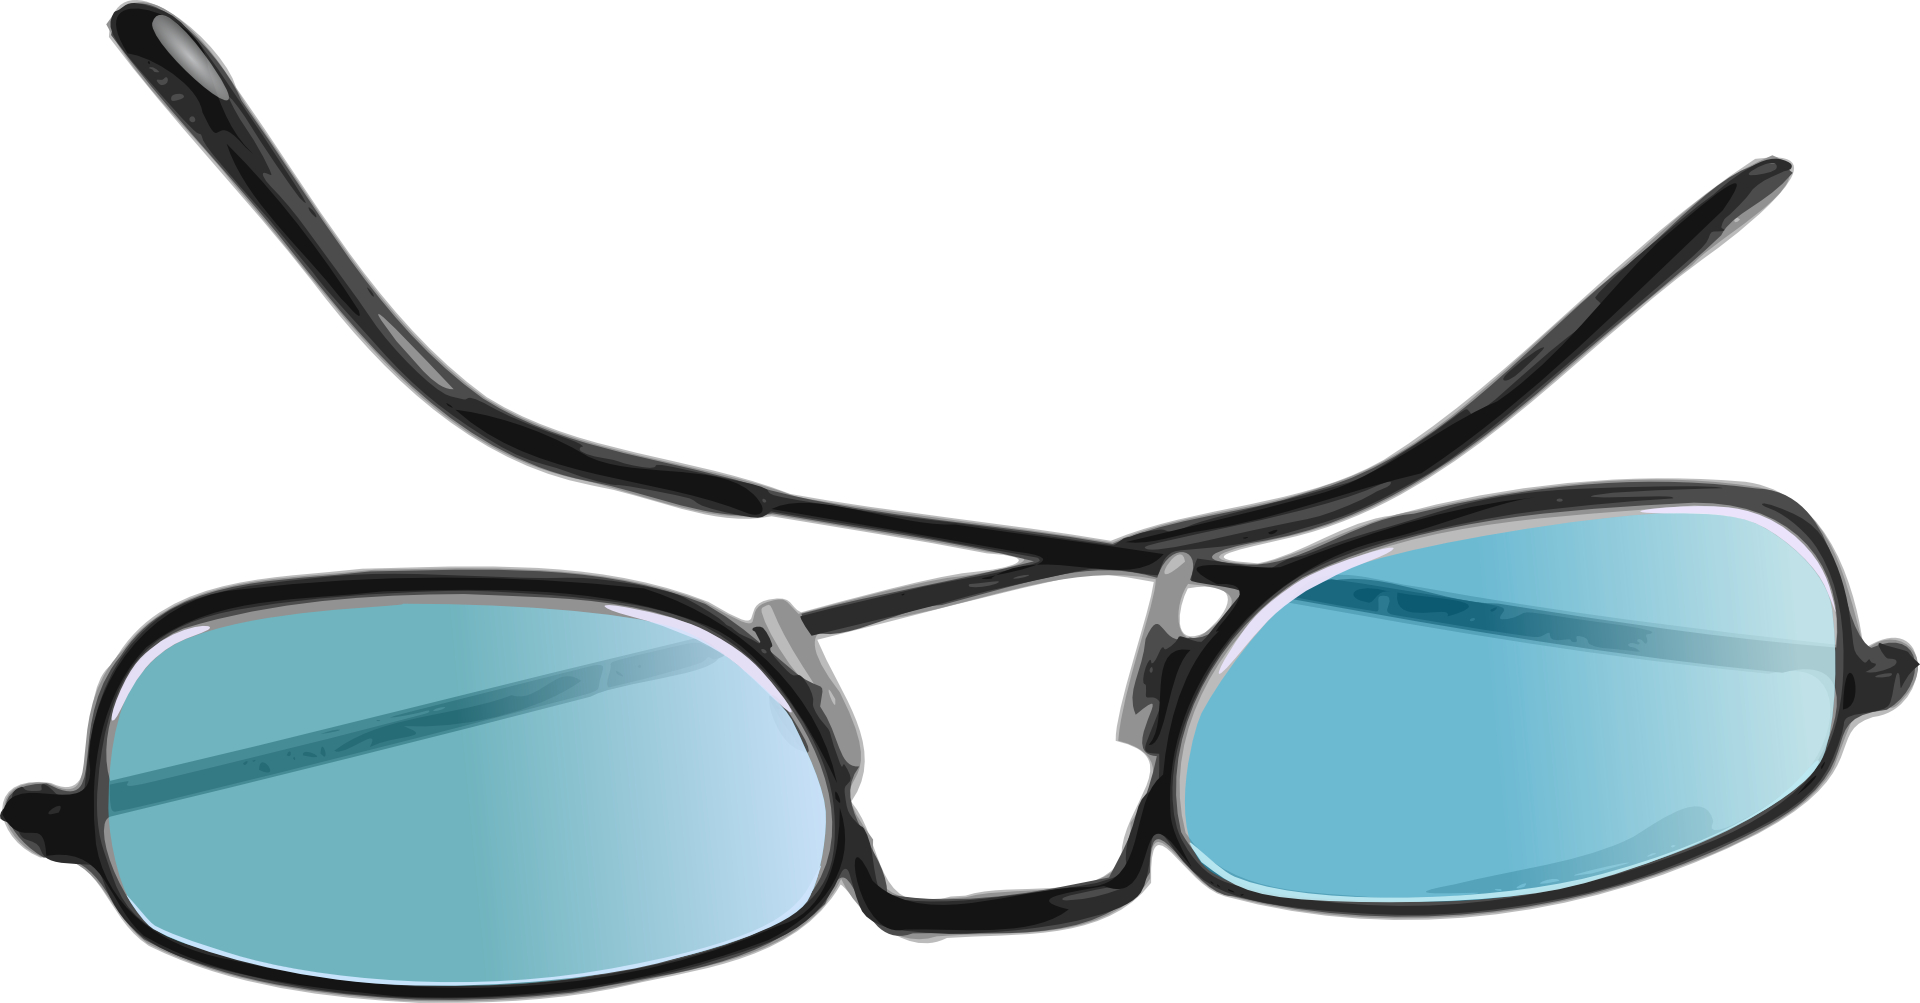 Light blue sunglass,myopic lens vector